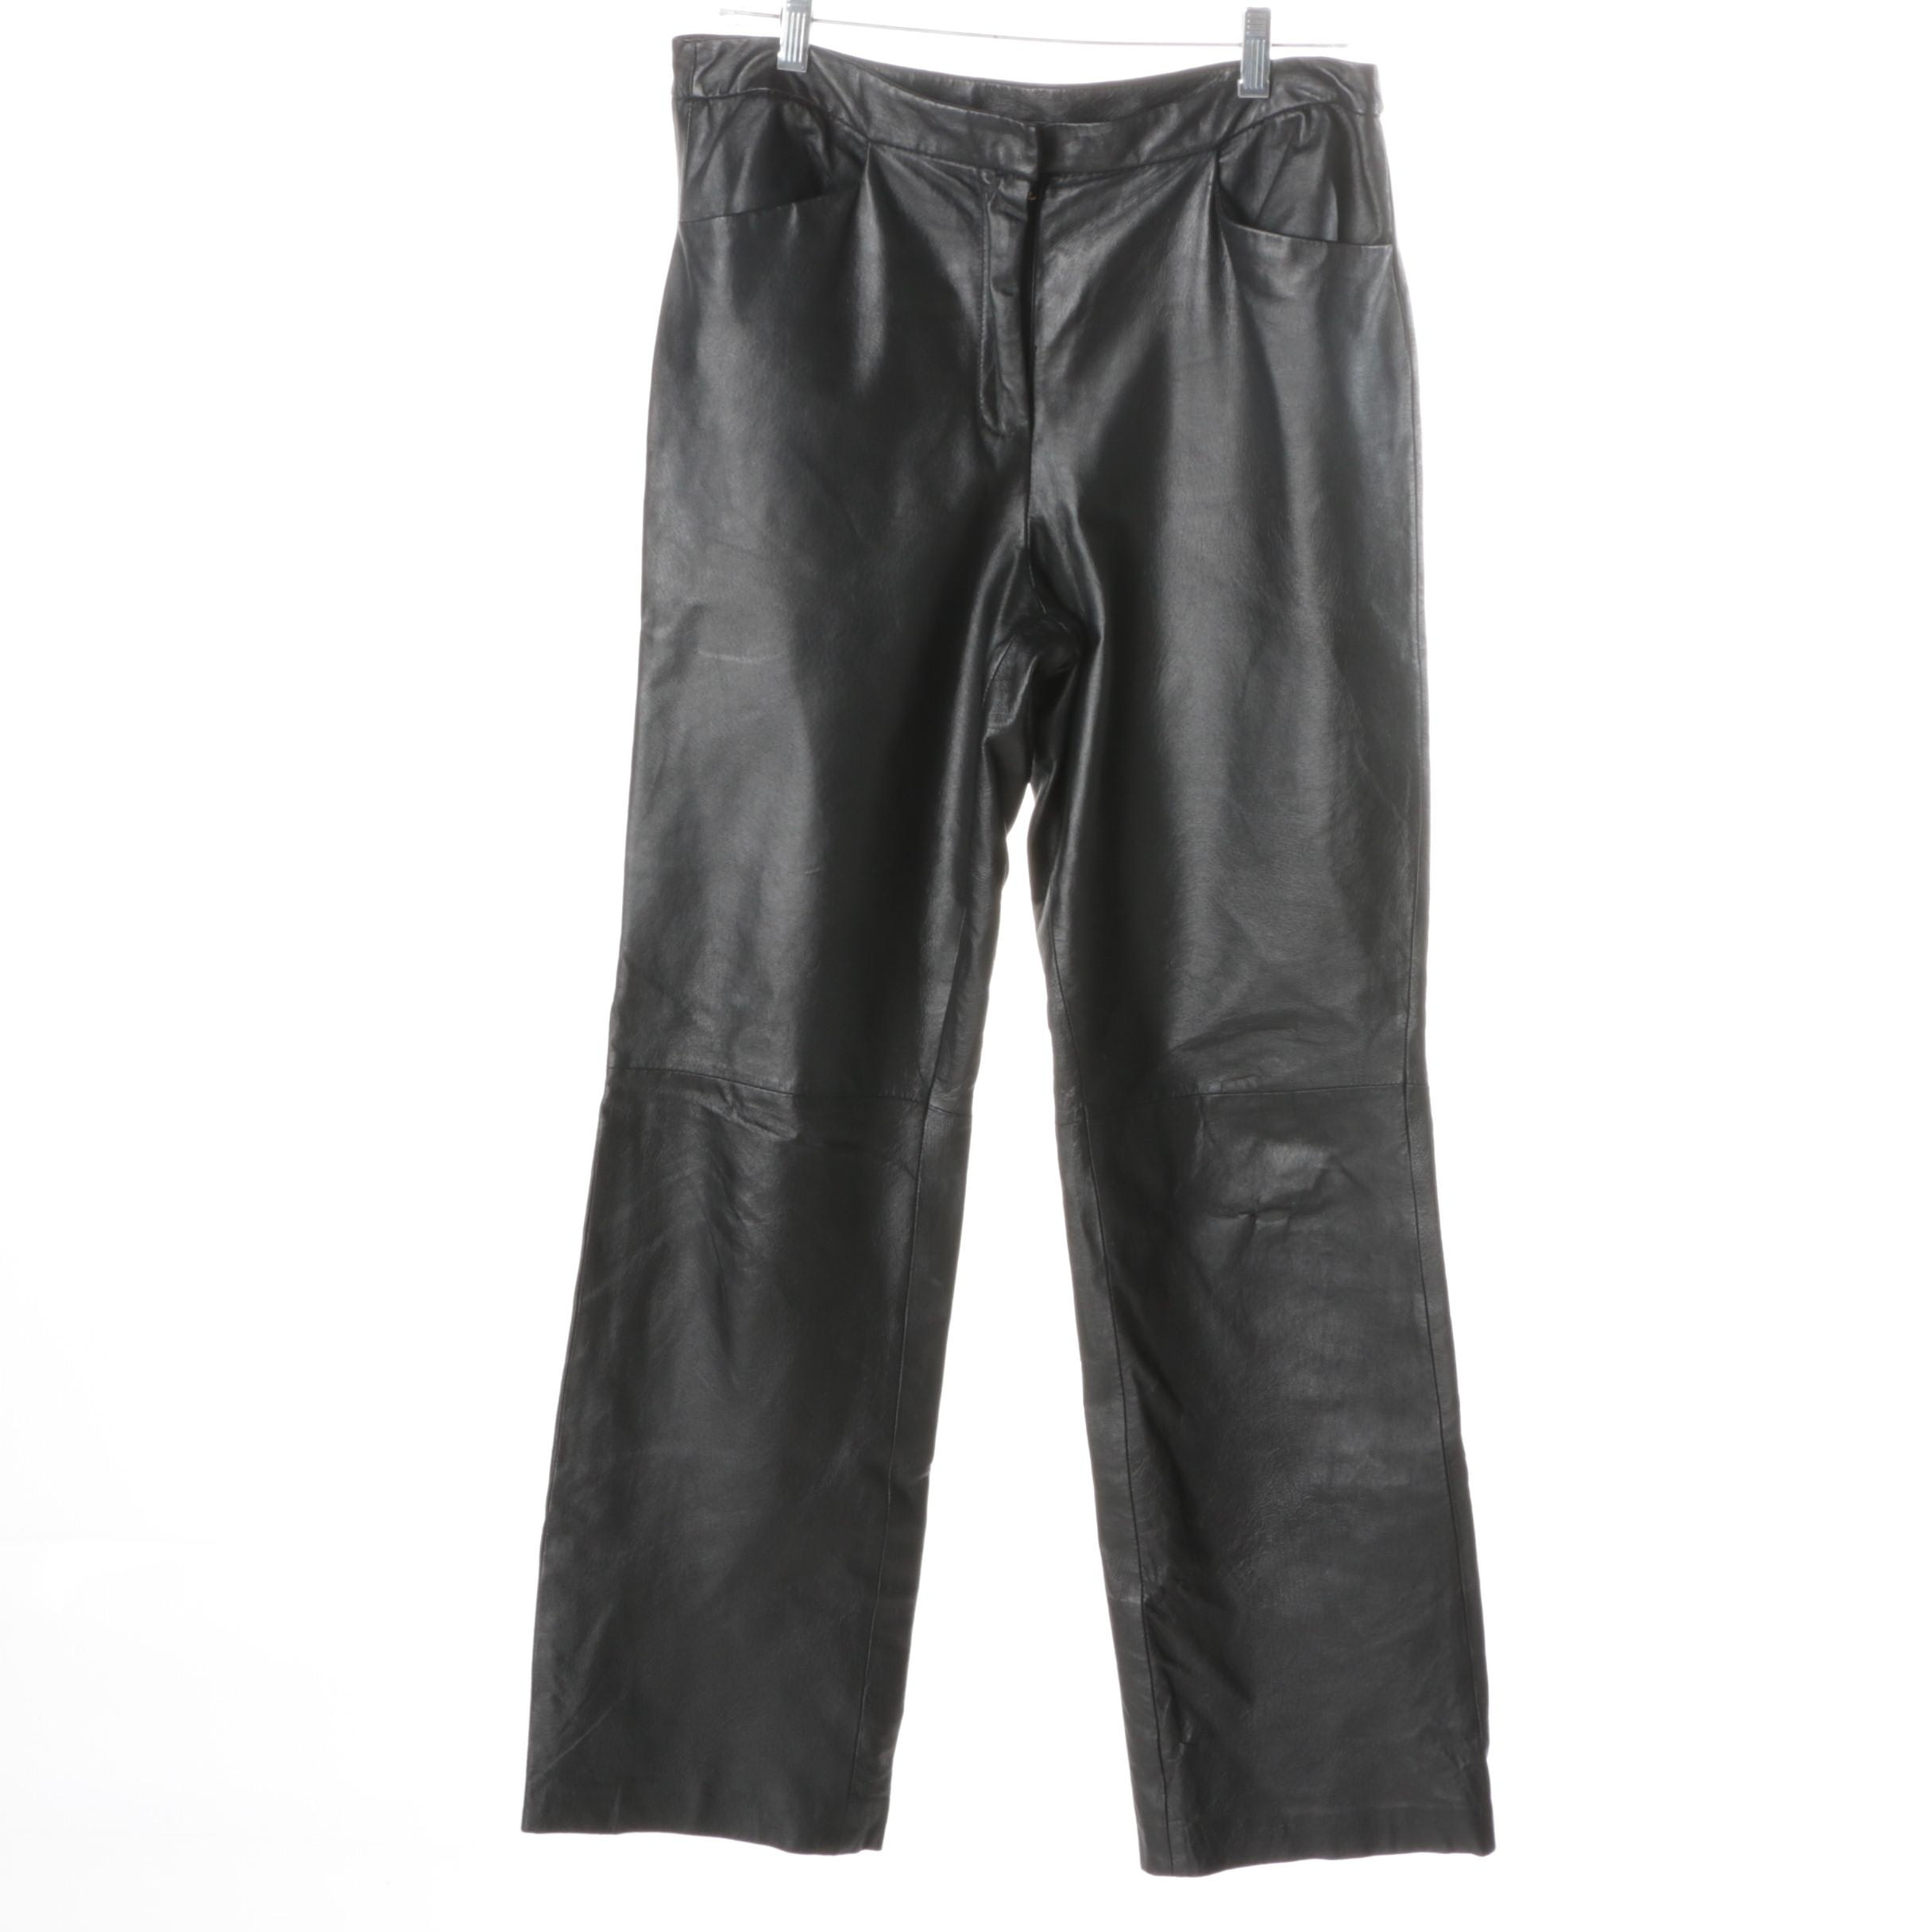 Chadwick's Leather Pants